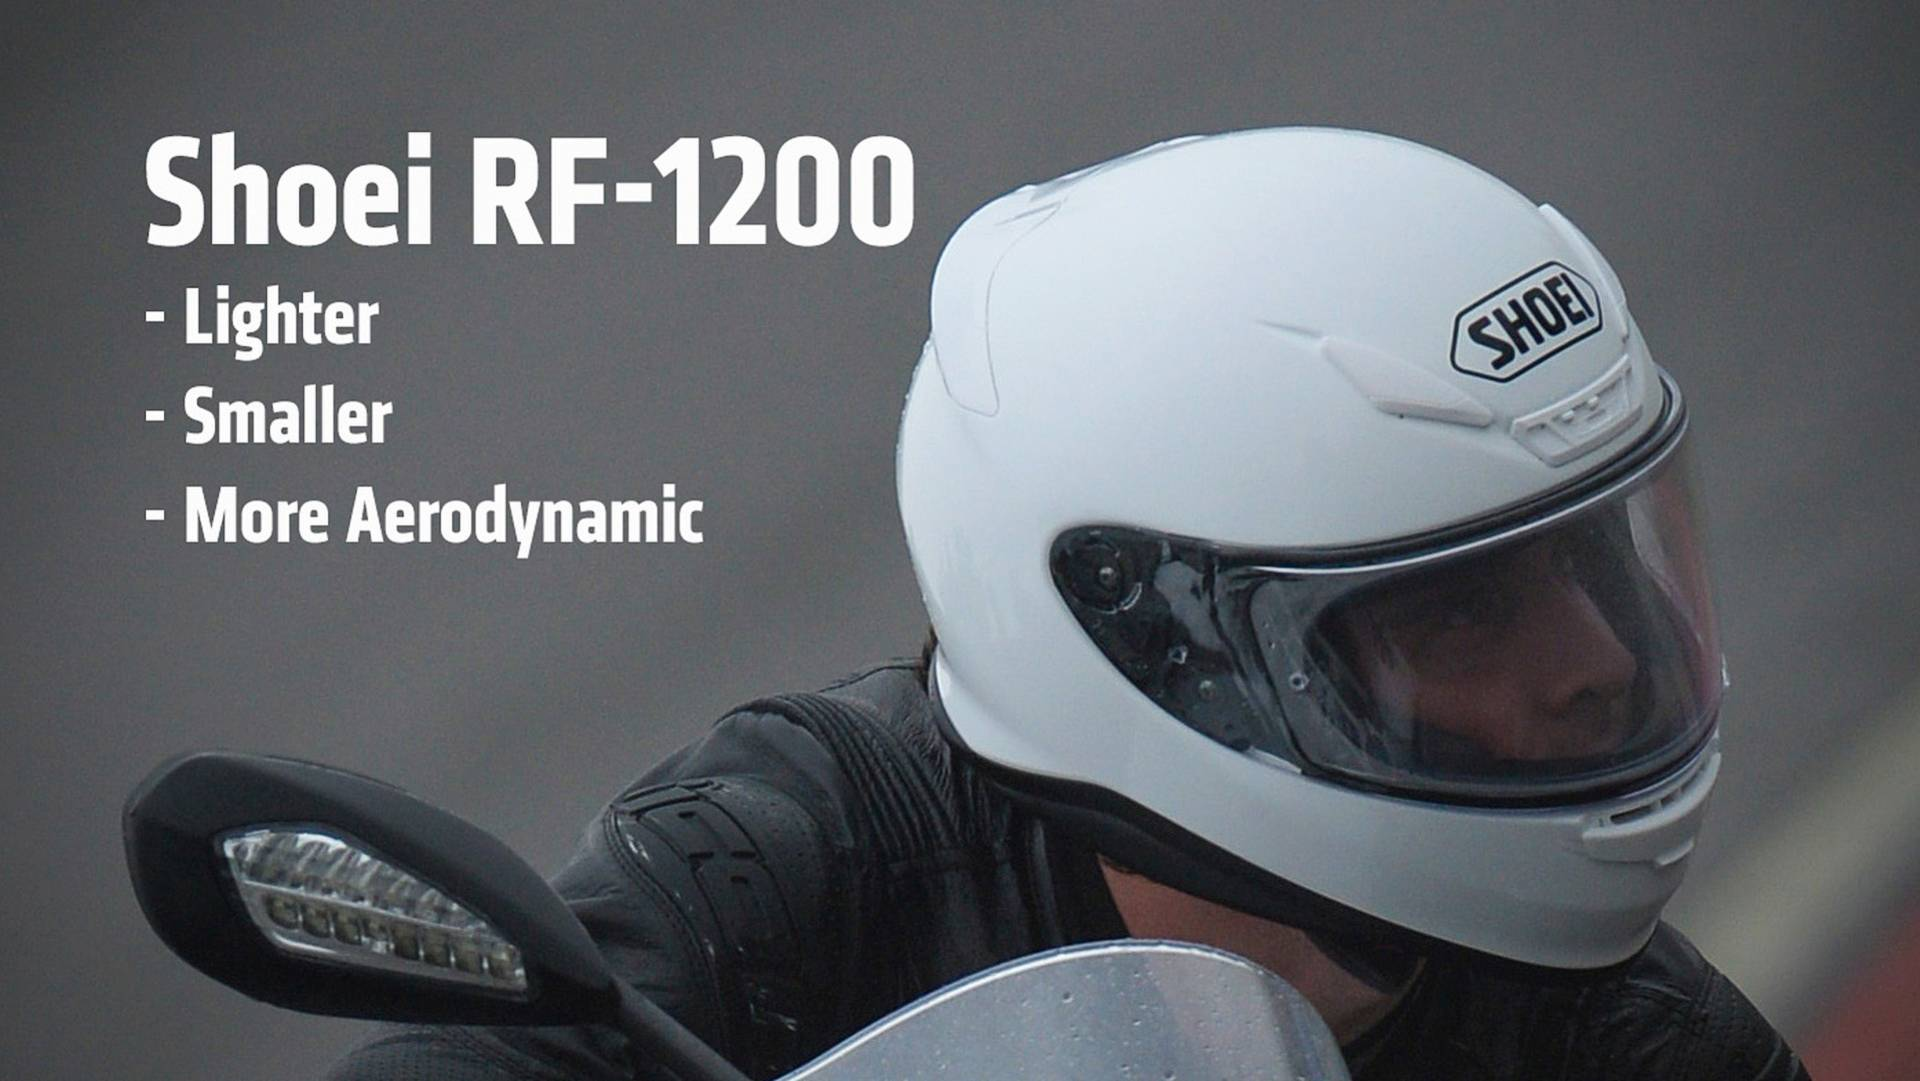 ef7a2da7 Gear Review: Shoei RF-1200 Helmet